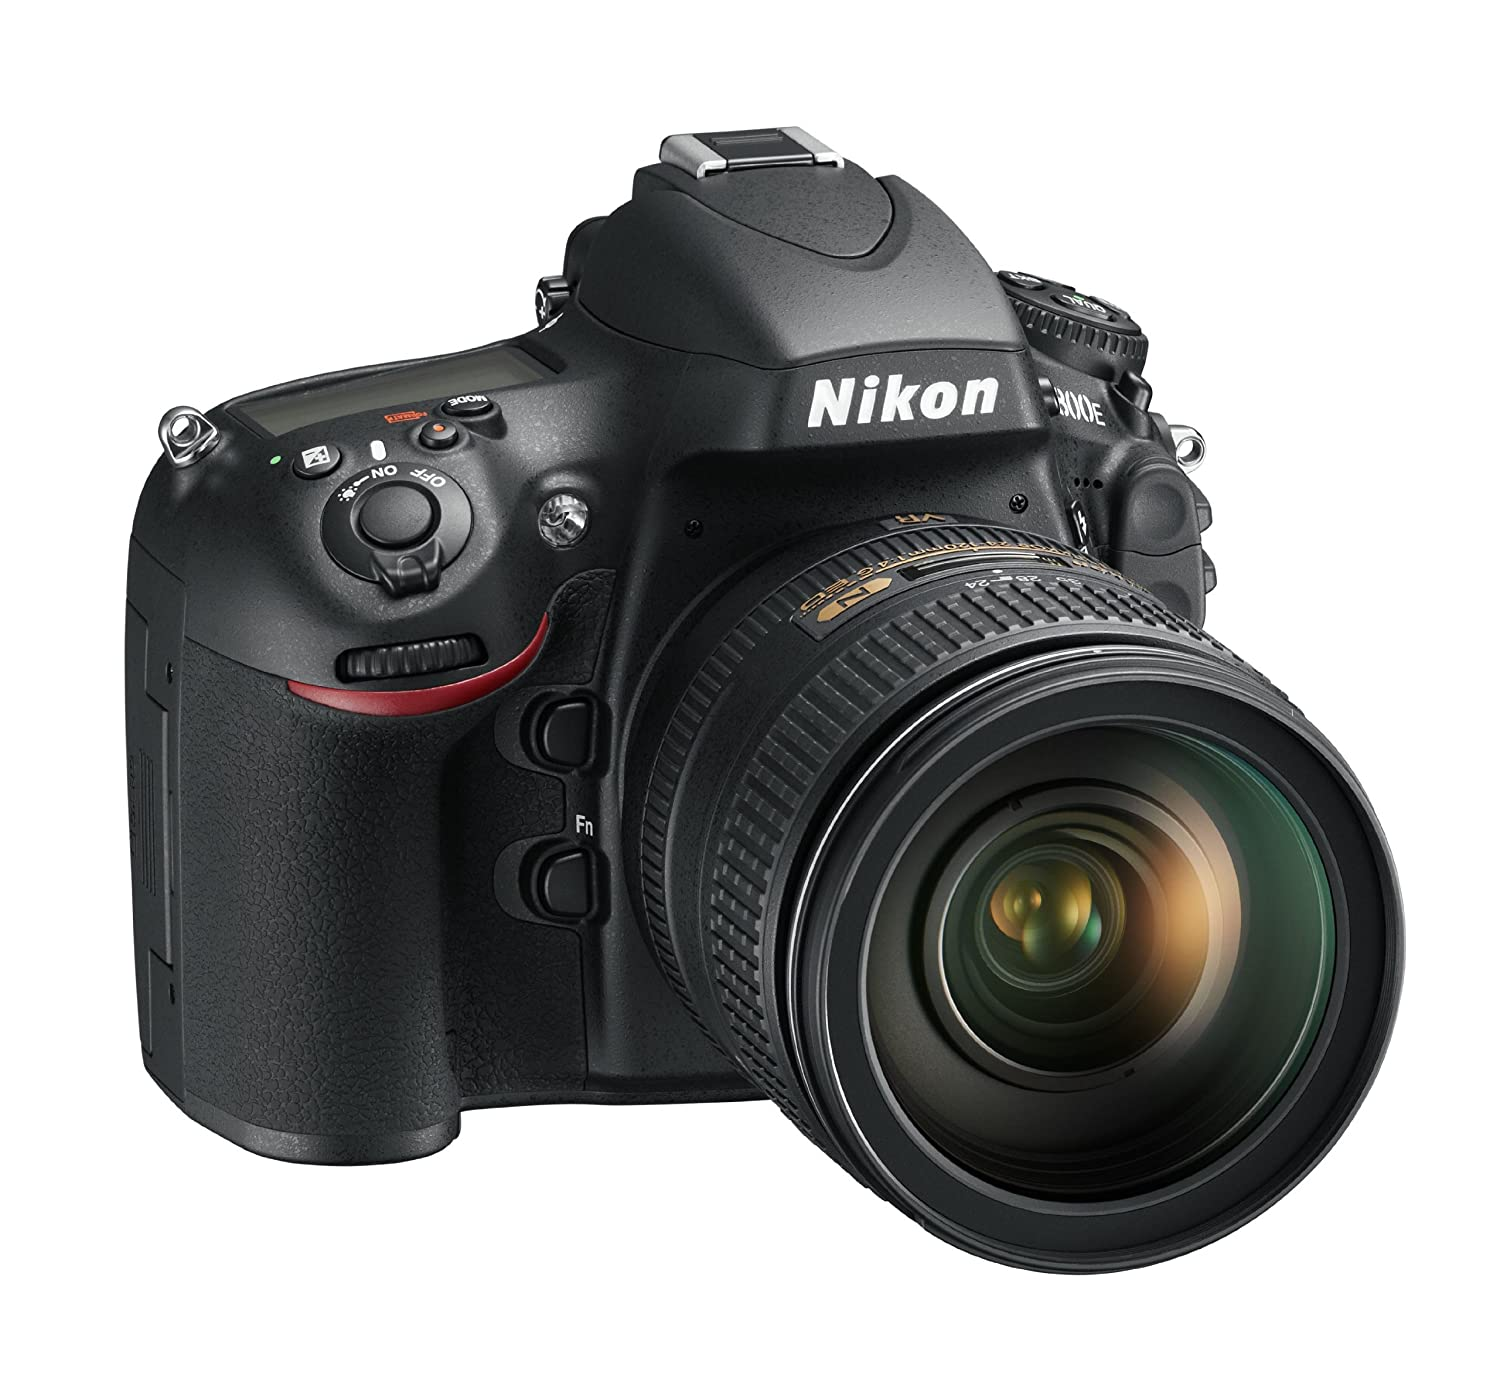 Camera Meaning Of Dslr Camera buy nikon d800e 36 3mp digital slr camera black body only online at low price in india reviews ratings a